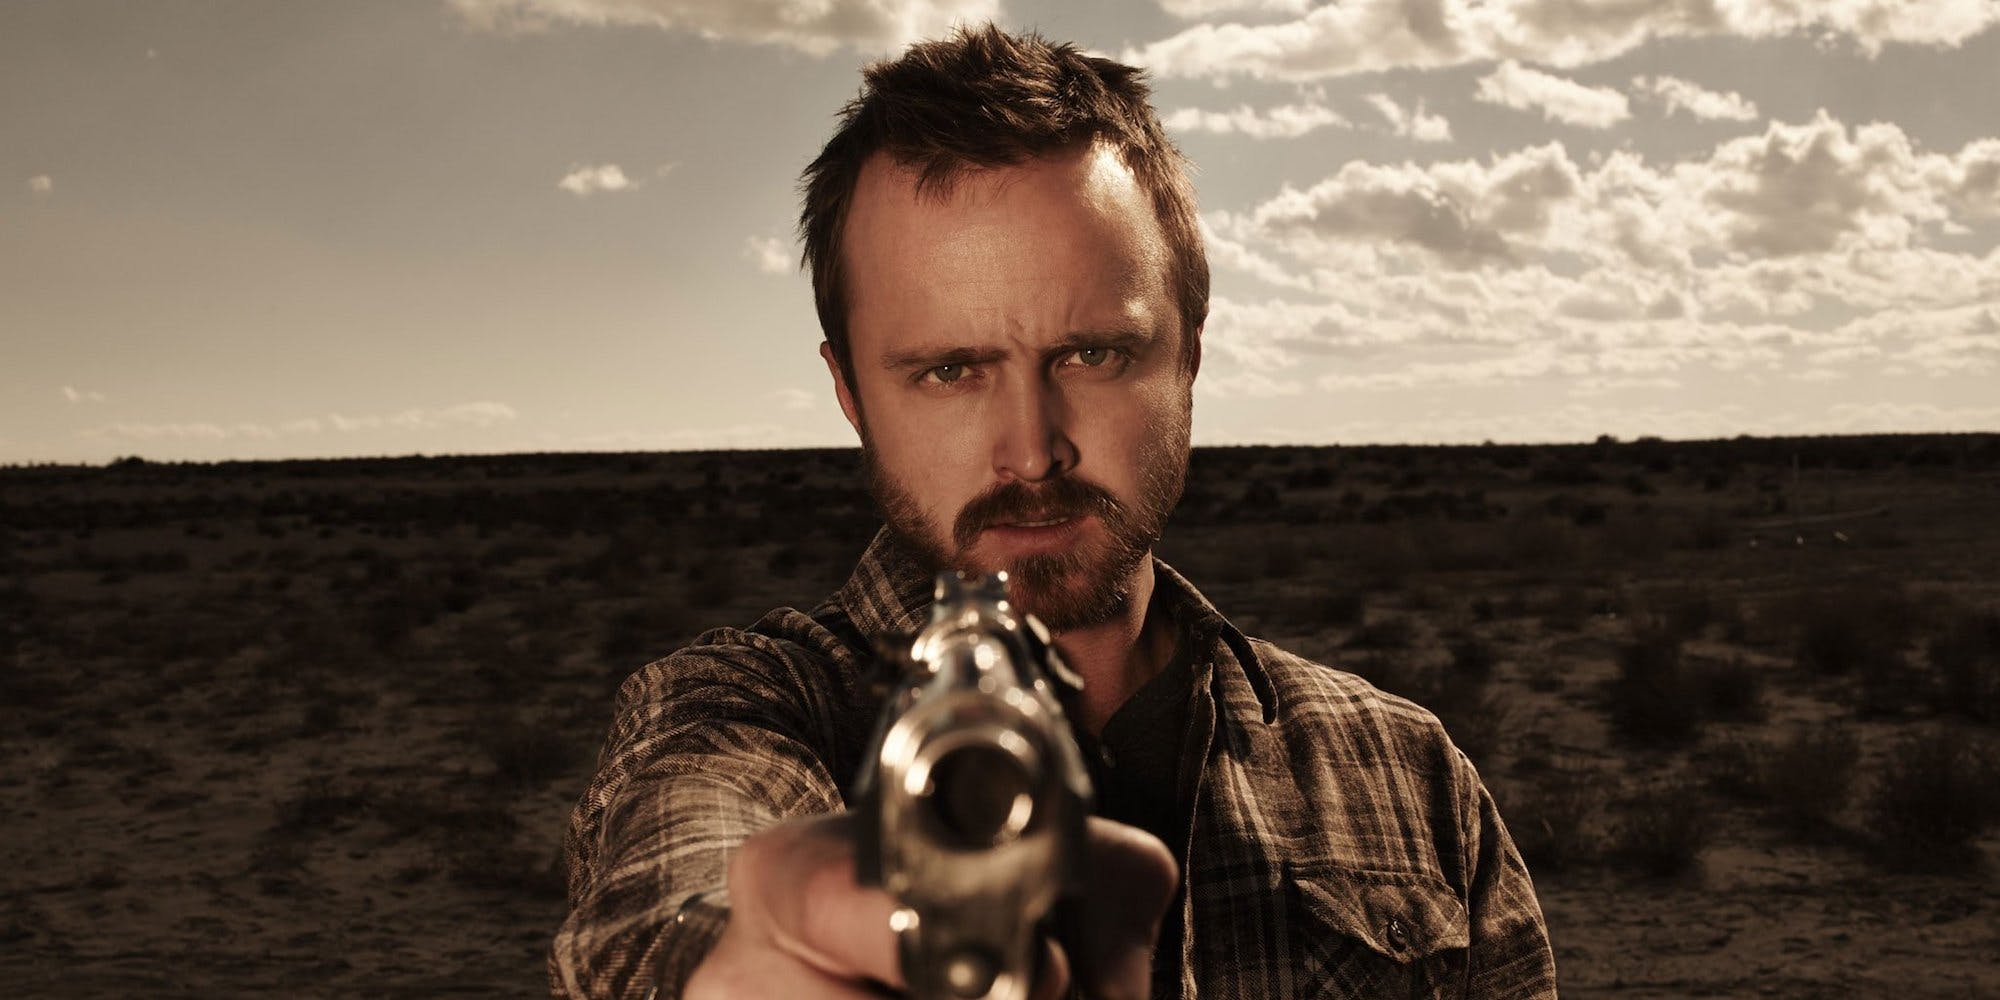 Breaking Bad movie is a sequel starring Aaron Paul